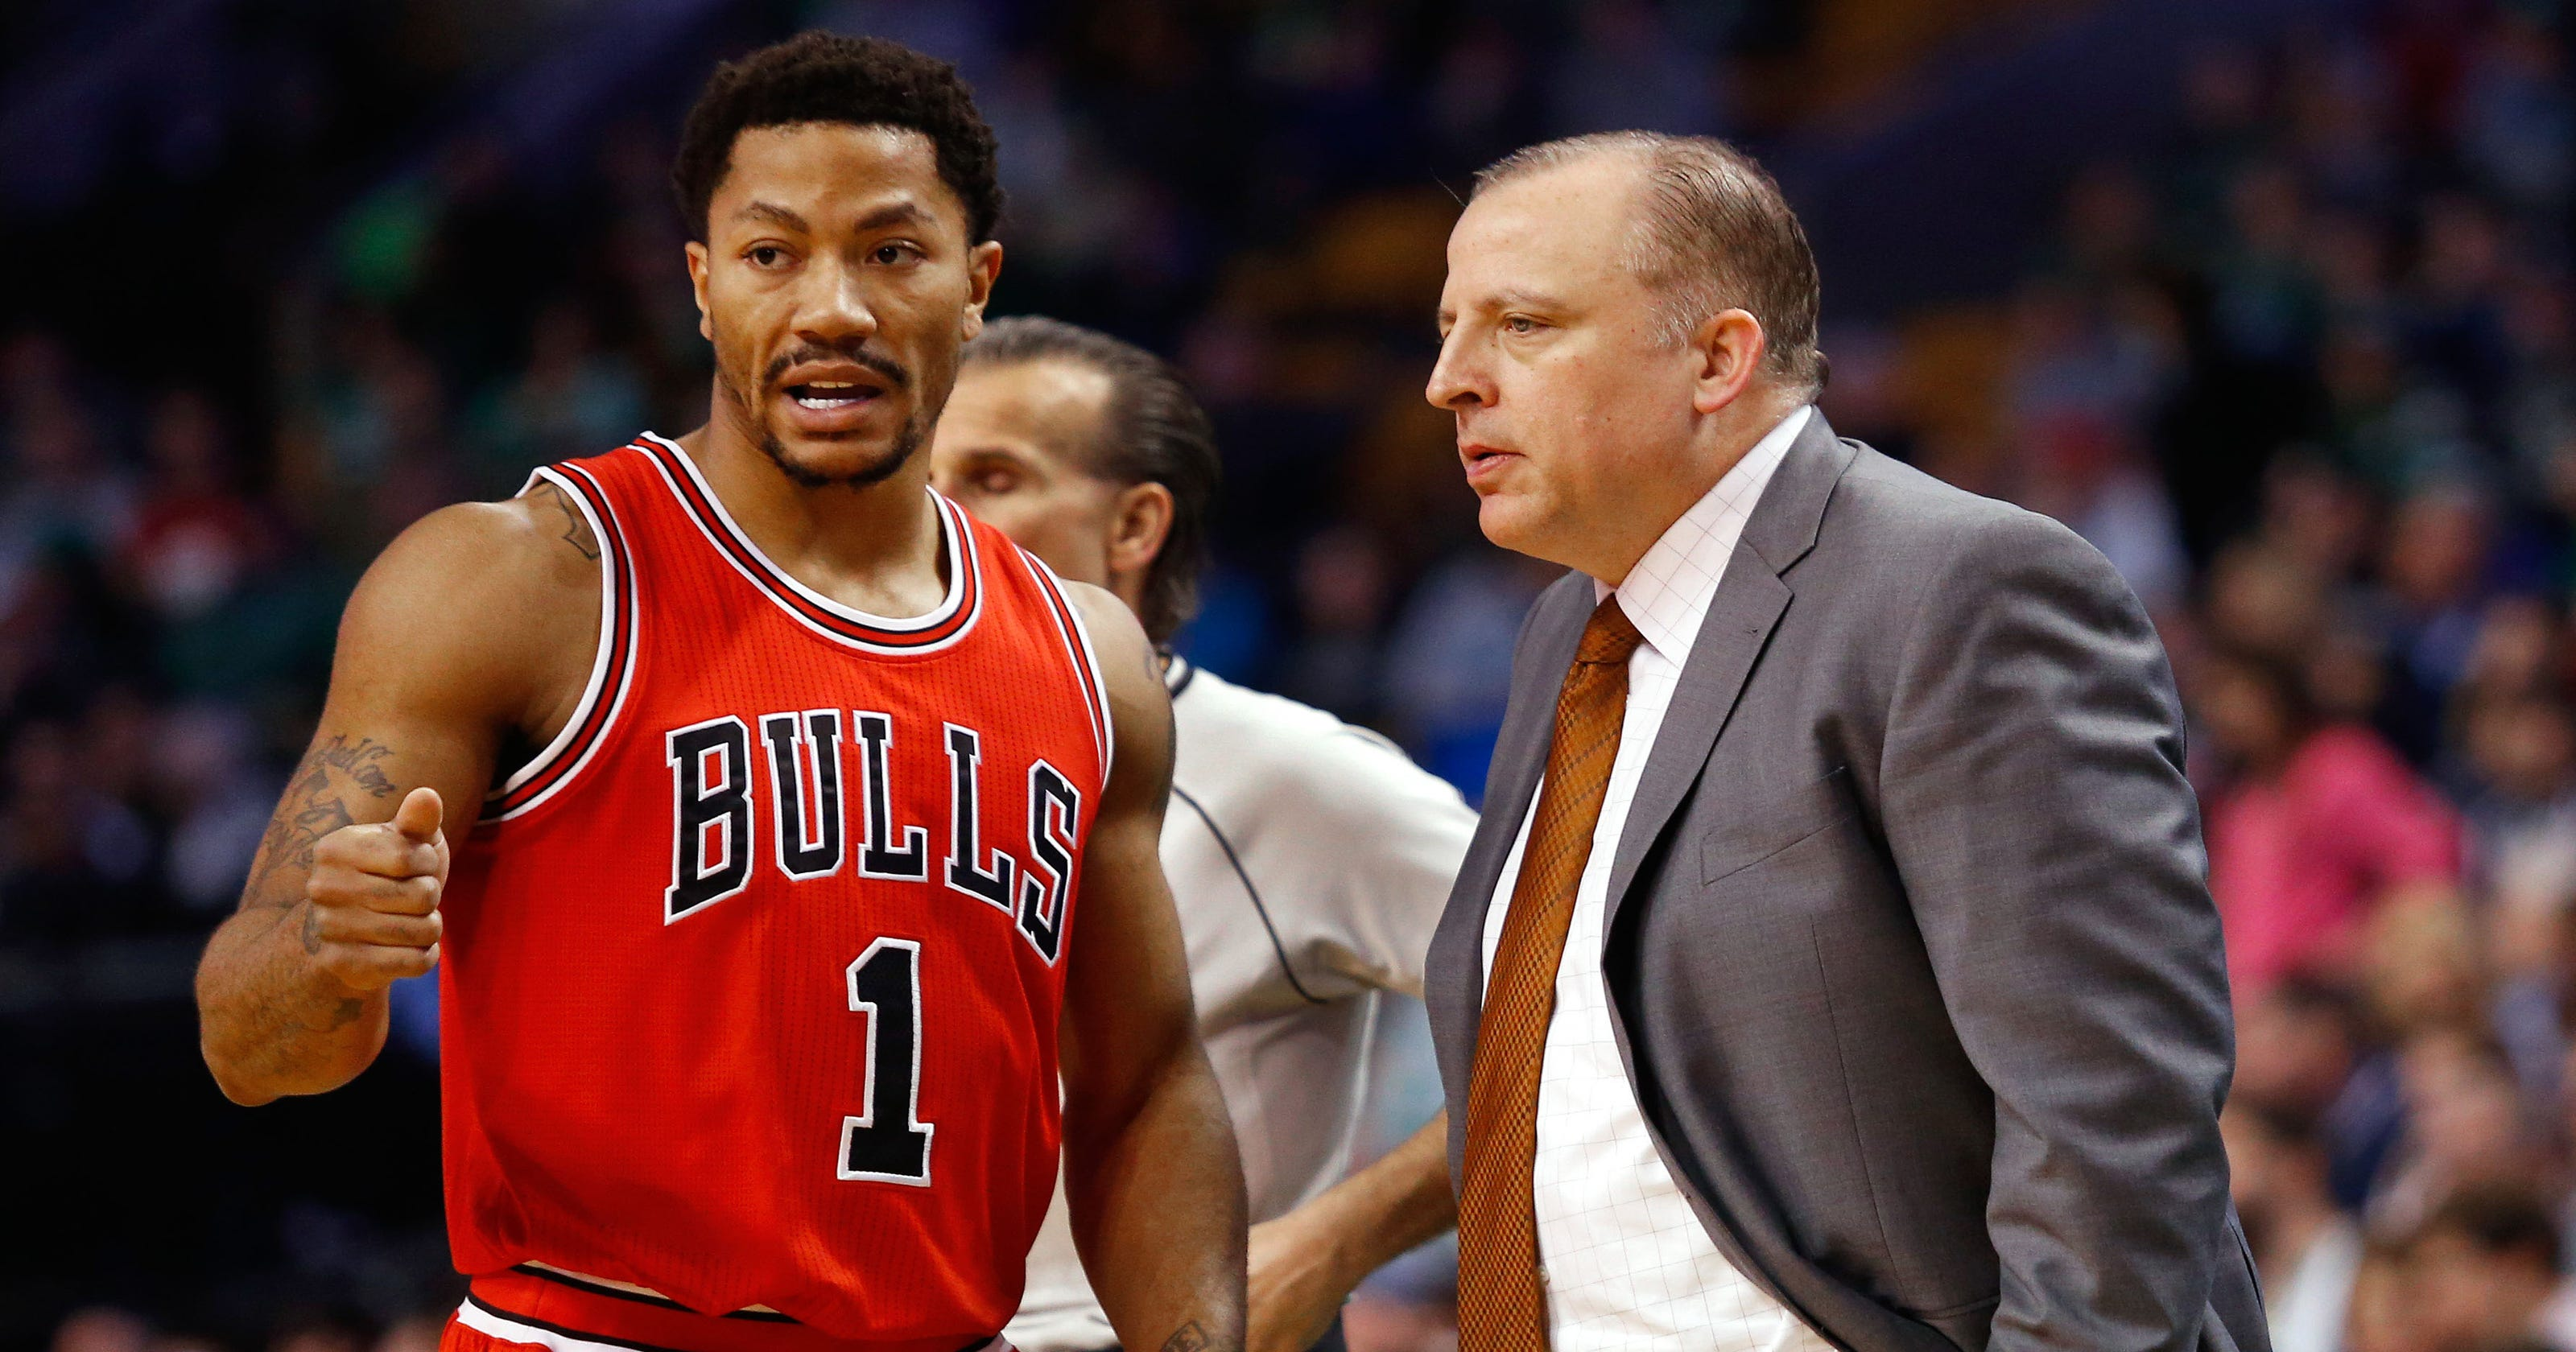 Derrick Rose   No truth  to criticism of Tom Thibodeau fe8478b91